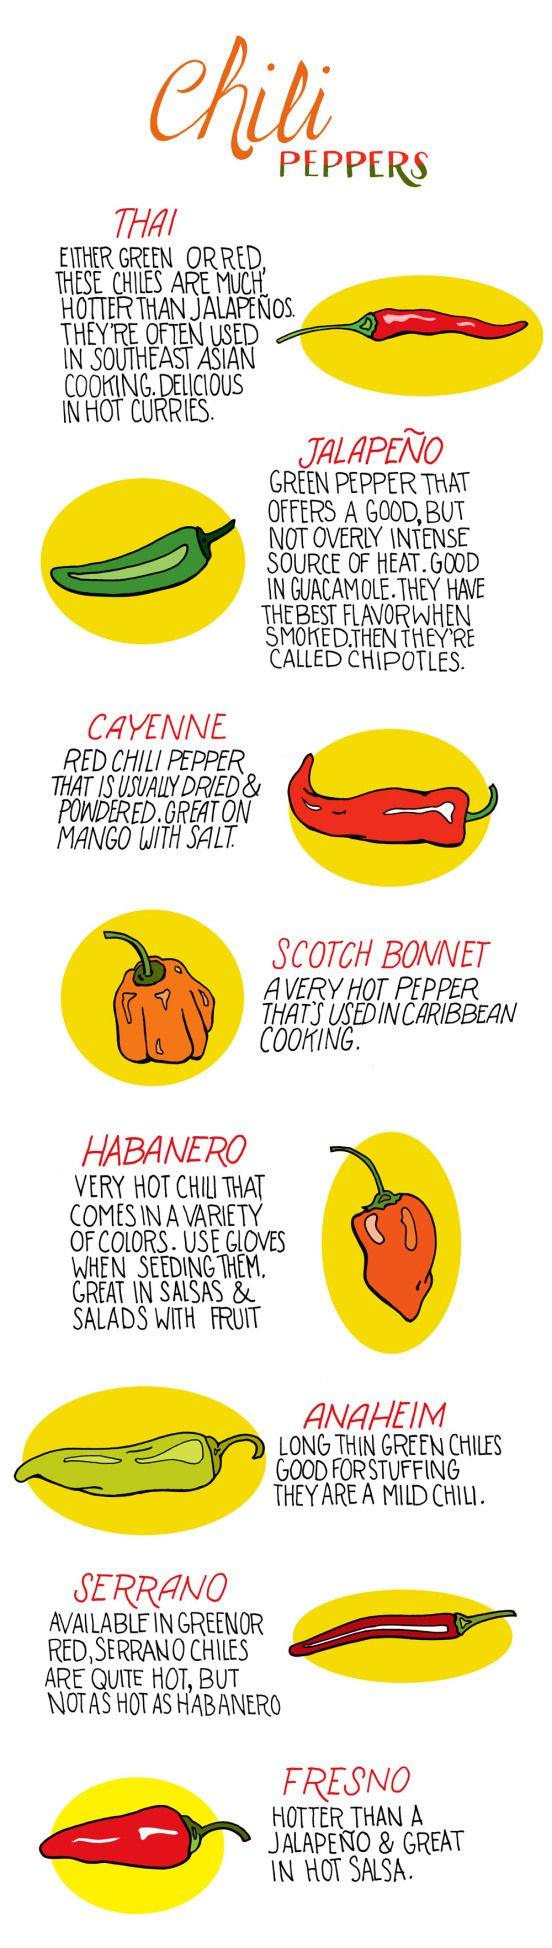 A Guide to Chili Peppers | illustratedbites.wordpress.com